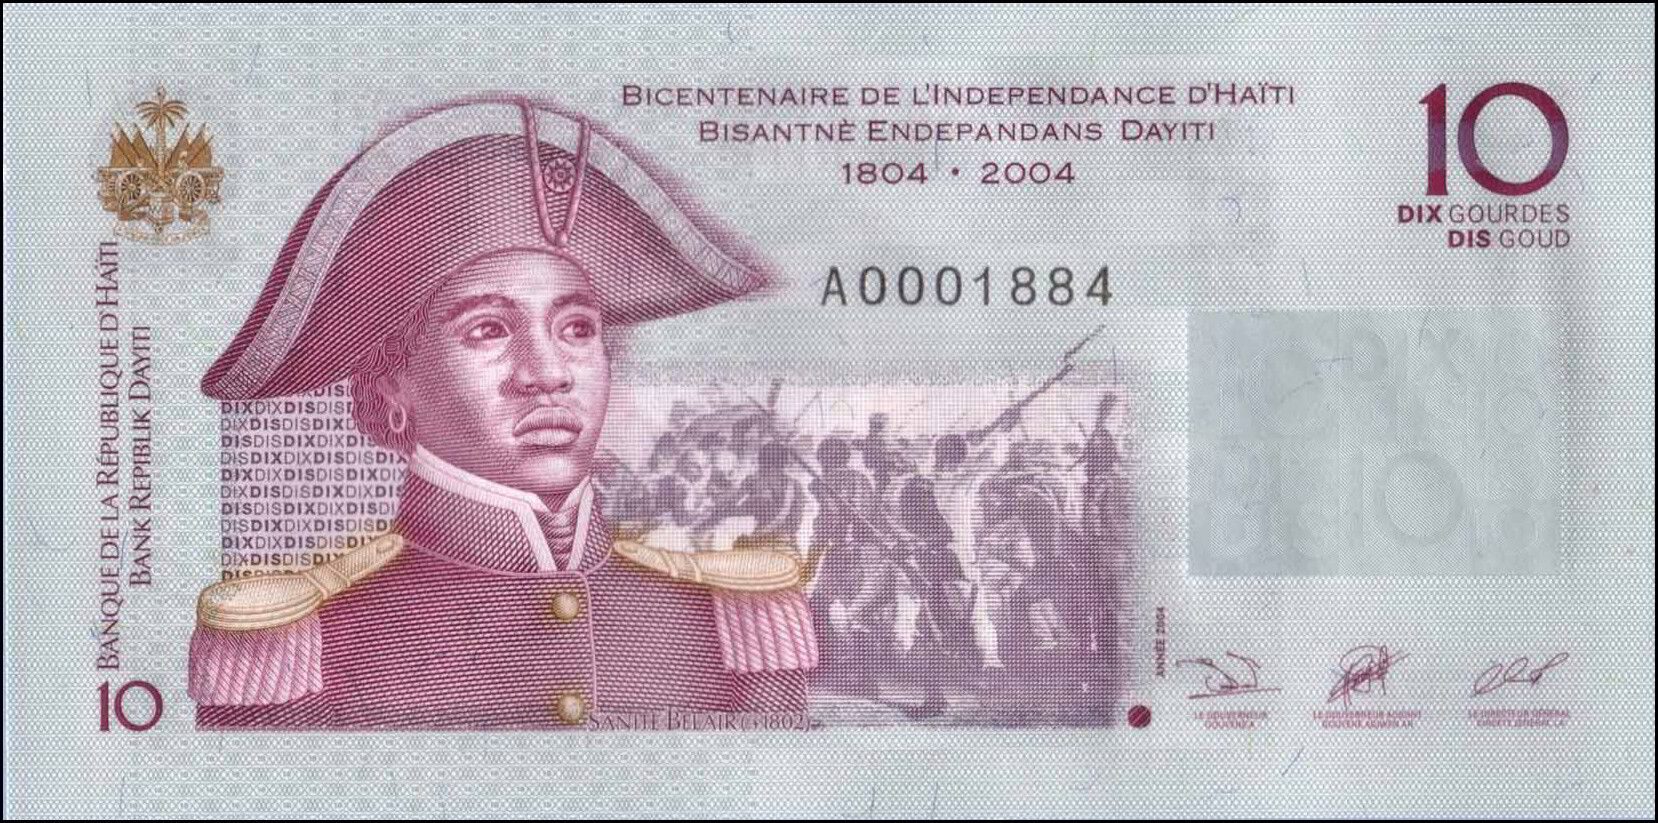 Bicentennial celebration of Haiti's Independence